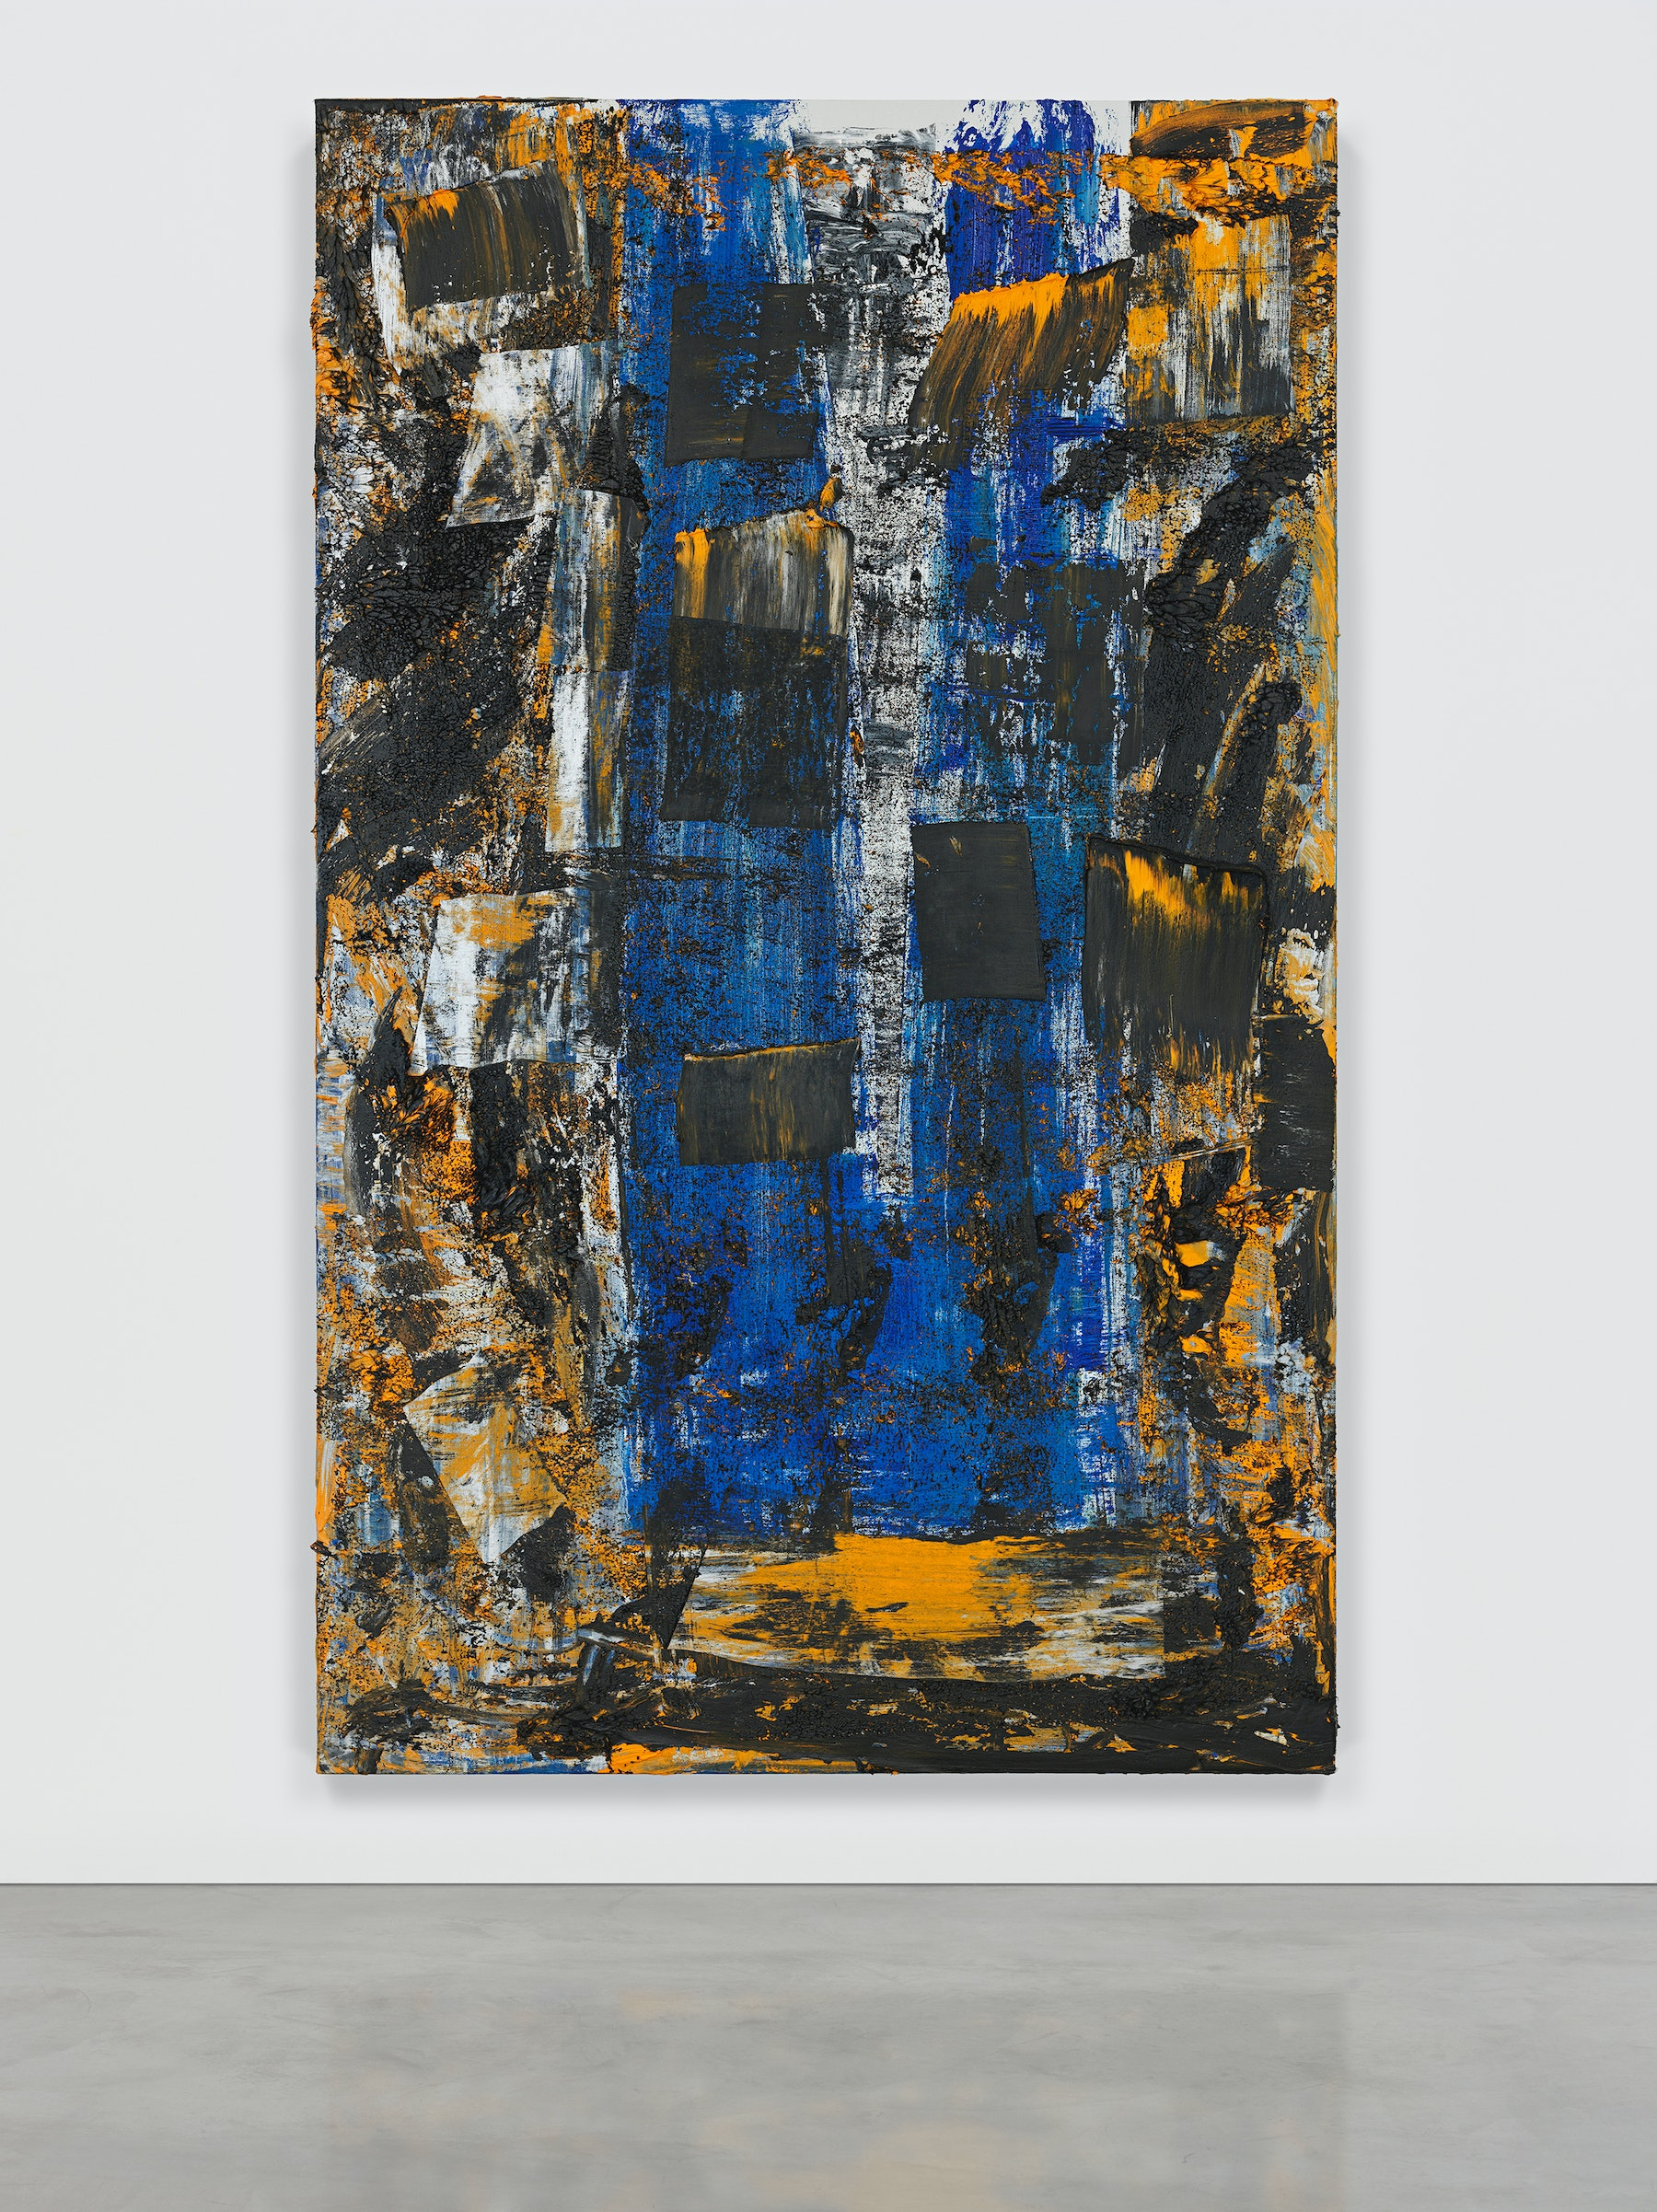 """Louise Fishman """"KOL NIDRE,"""" 2019 Oil on linen 74"""" x 46"""" [HxW] (187.96 x 116.84 cm) Inventory #FIS128 Courtesy of the artist and Vielmetter Los Angeles Photo credit: Genevieve Hanson Signed and dated on verso"""